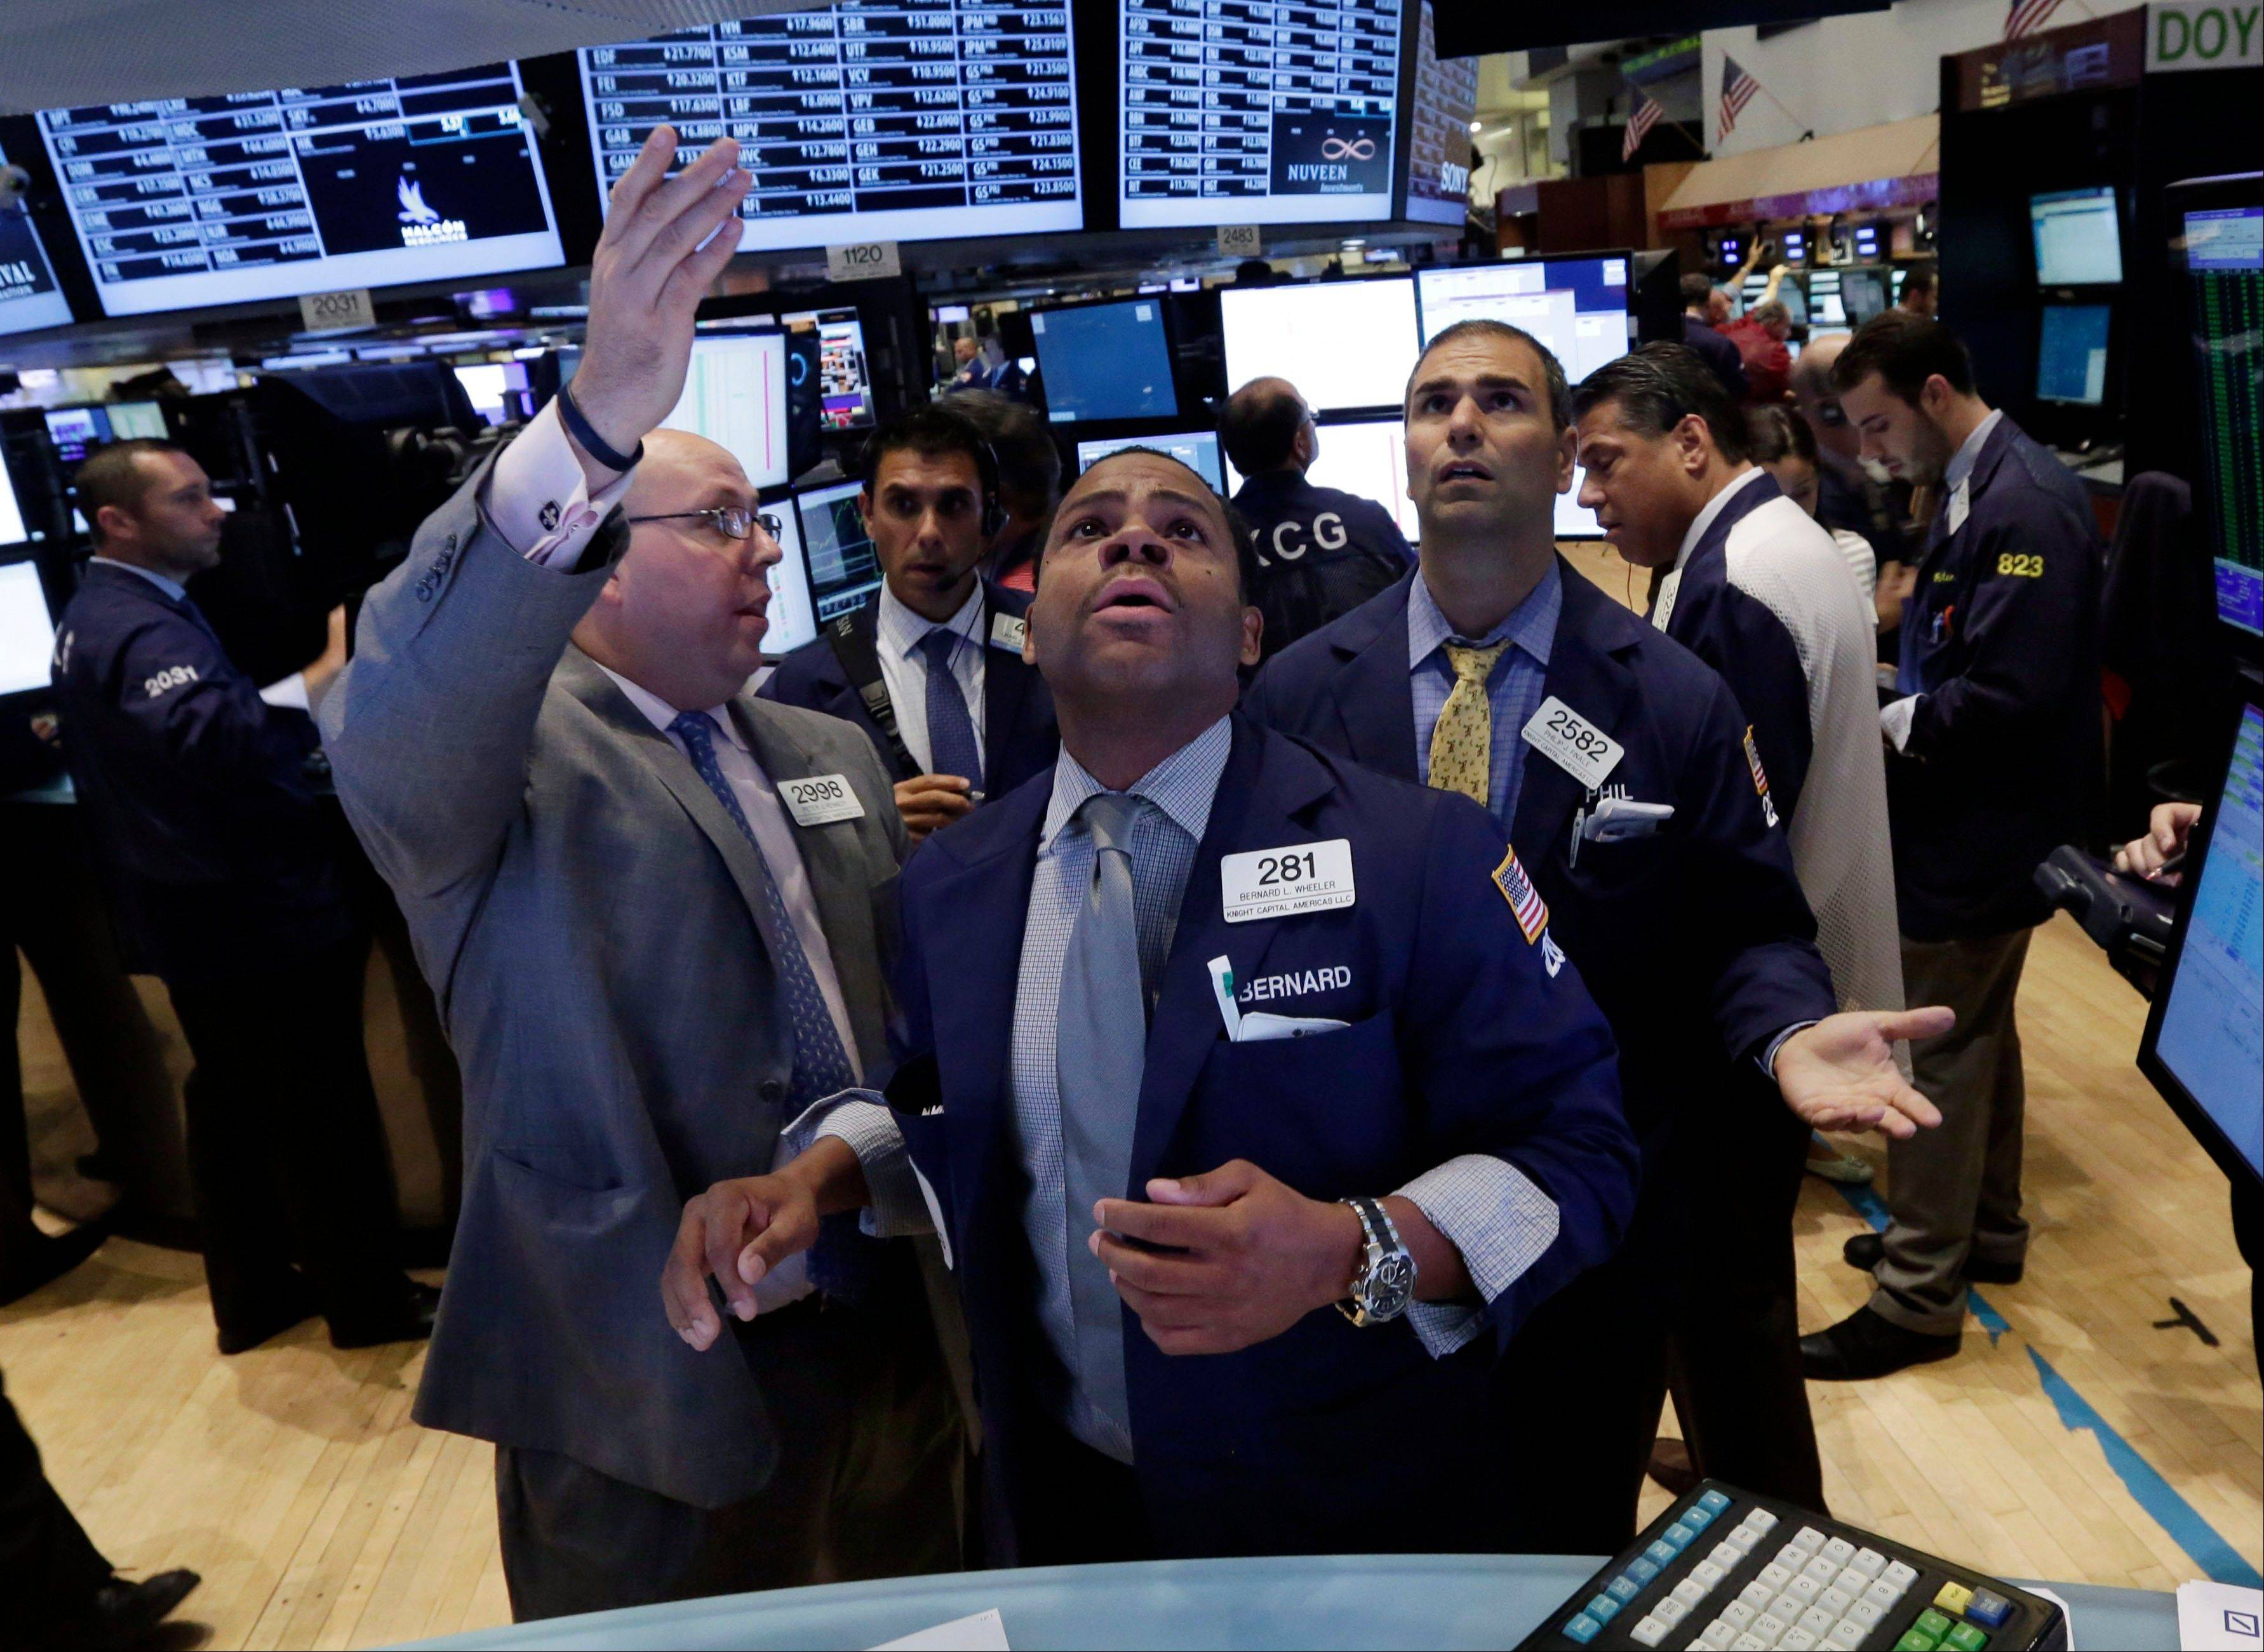 Specialists Peter Kennedy, Bernard Wheeler, and Philip Finale, confer on the floor of the New York Stock Exchange.